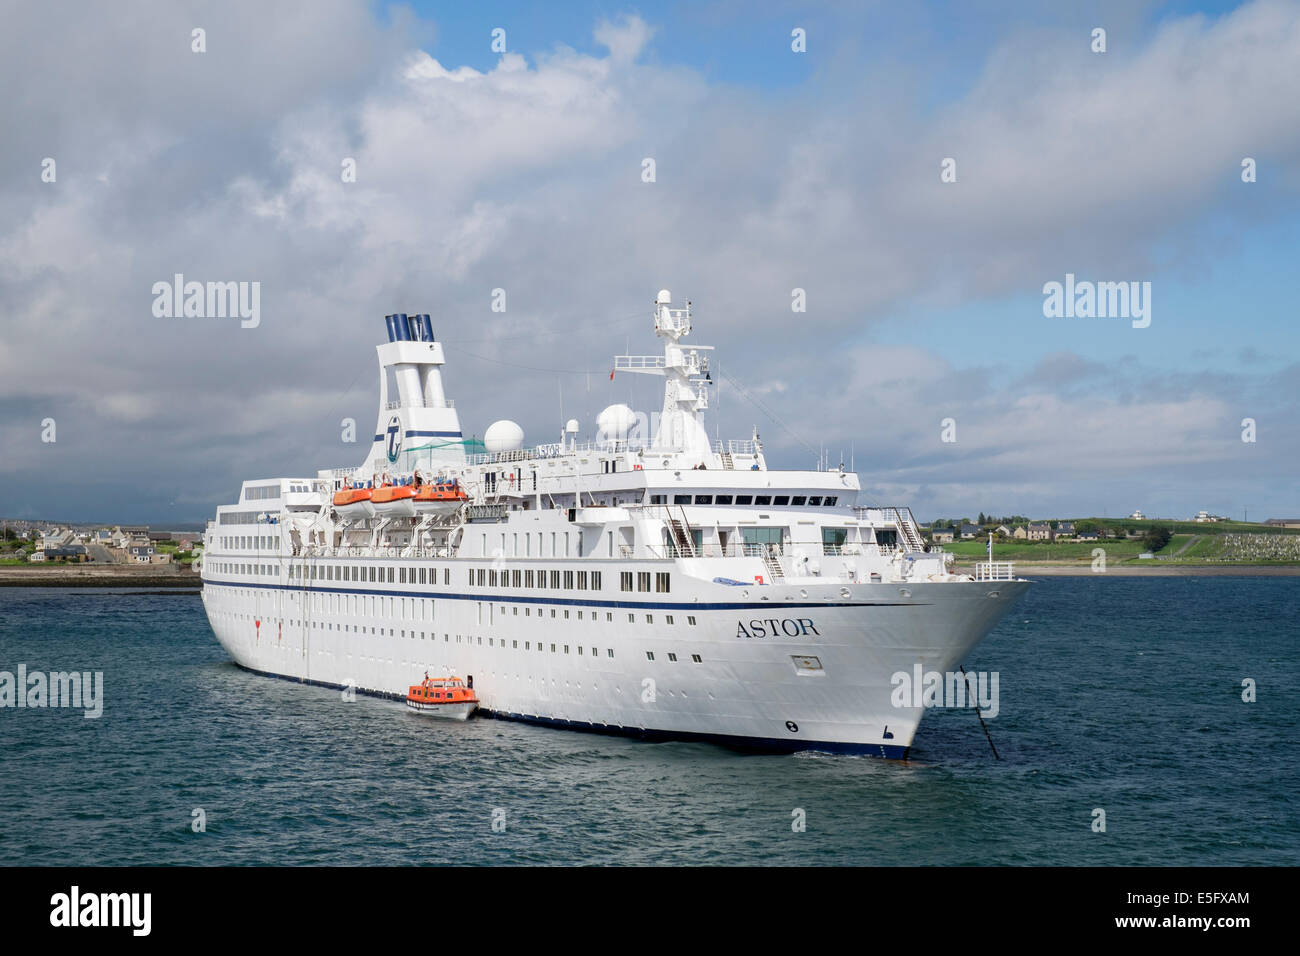 Large cruise liner MS Astor anchored at sea in Stornoway harbour, Isle of Lewis, Outer Hebrides, Western Isles, - Stock Image